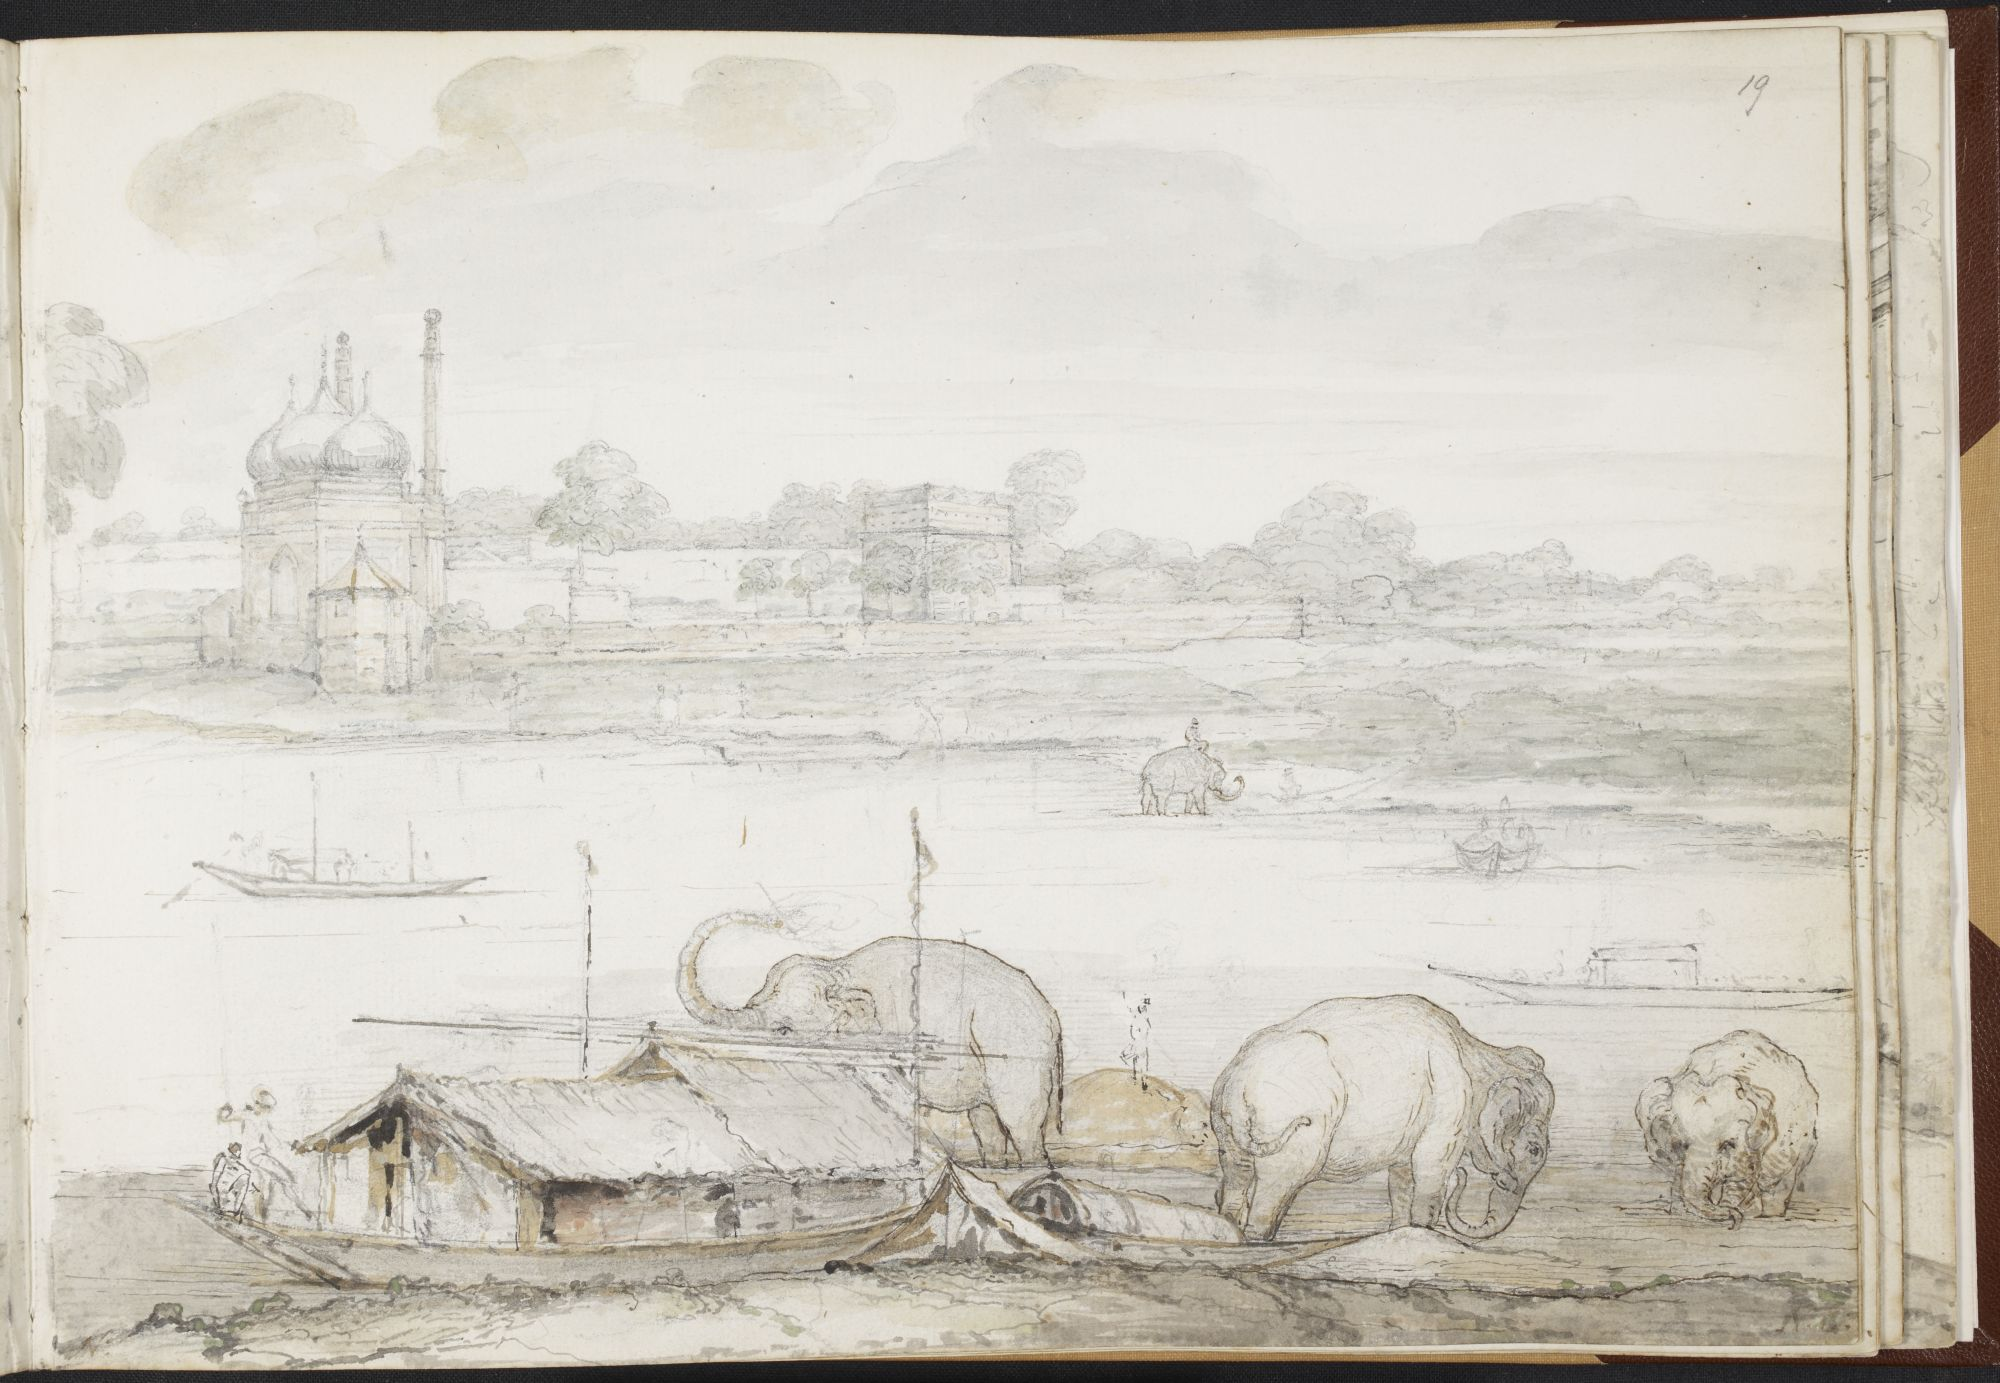 Ozias Humphry, Pagoda at Lucknow taken from Mr Wombwell's house, 13 March 1786. British Library Add. MS 15962, f.19